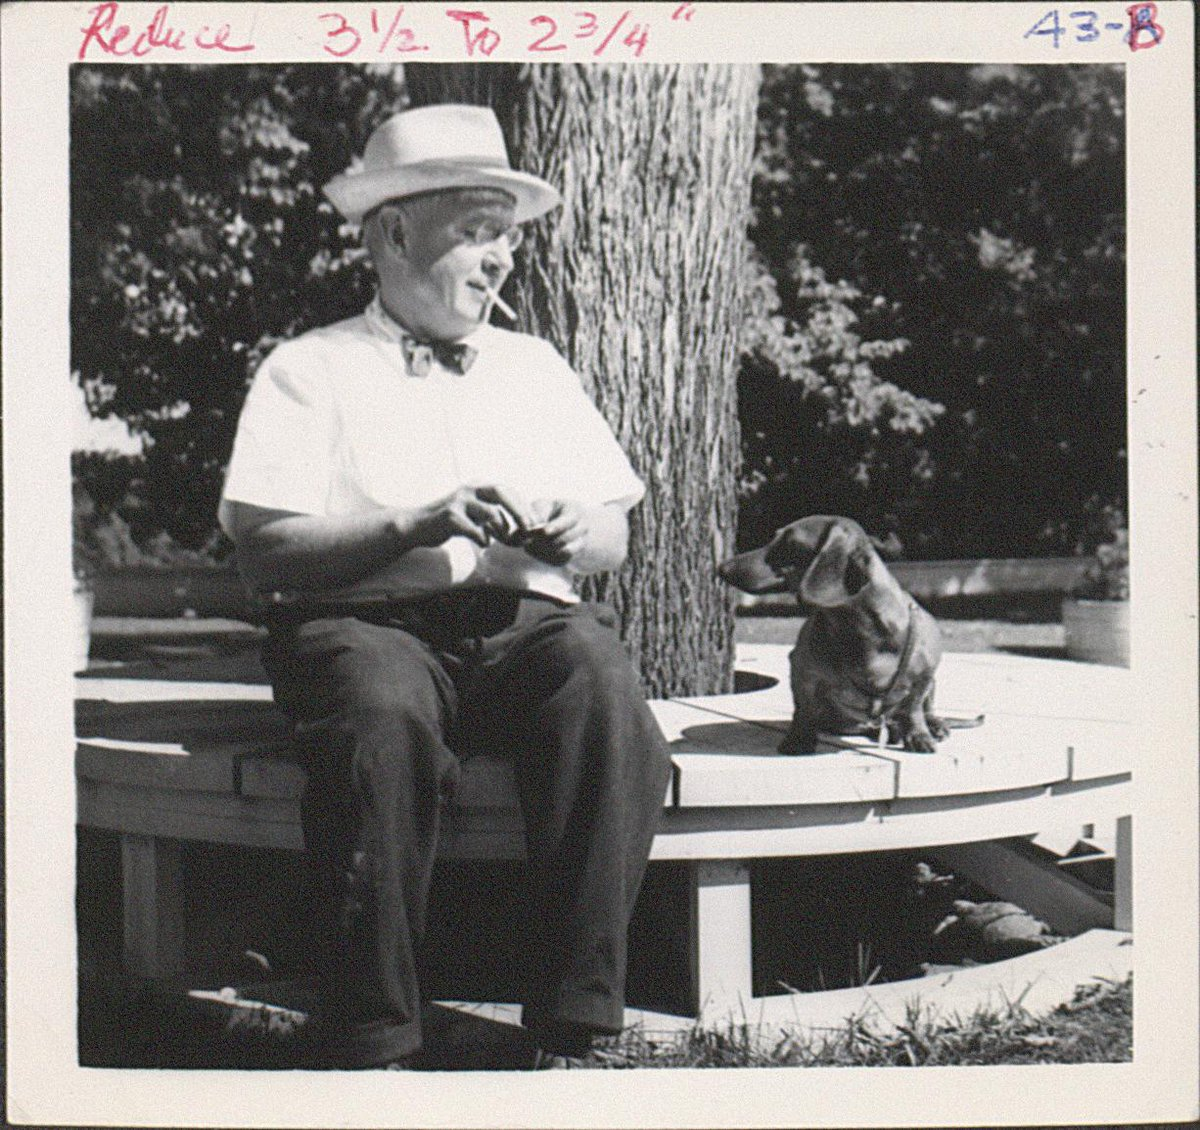 Paws for a moment to enjoy these photos of dogs in our collex, http://t.co/LQFv441Fhx #NationalDogDay http://t.co/pSwRSxtVib